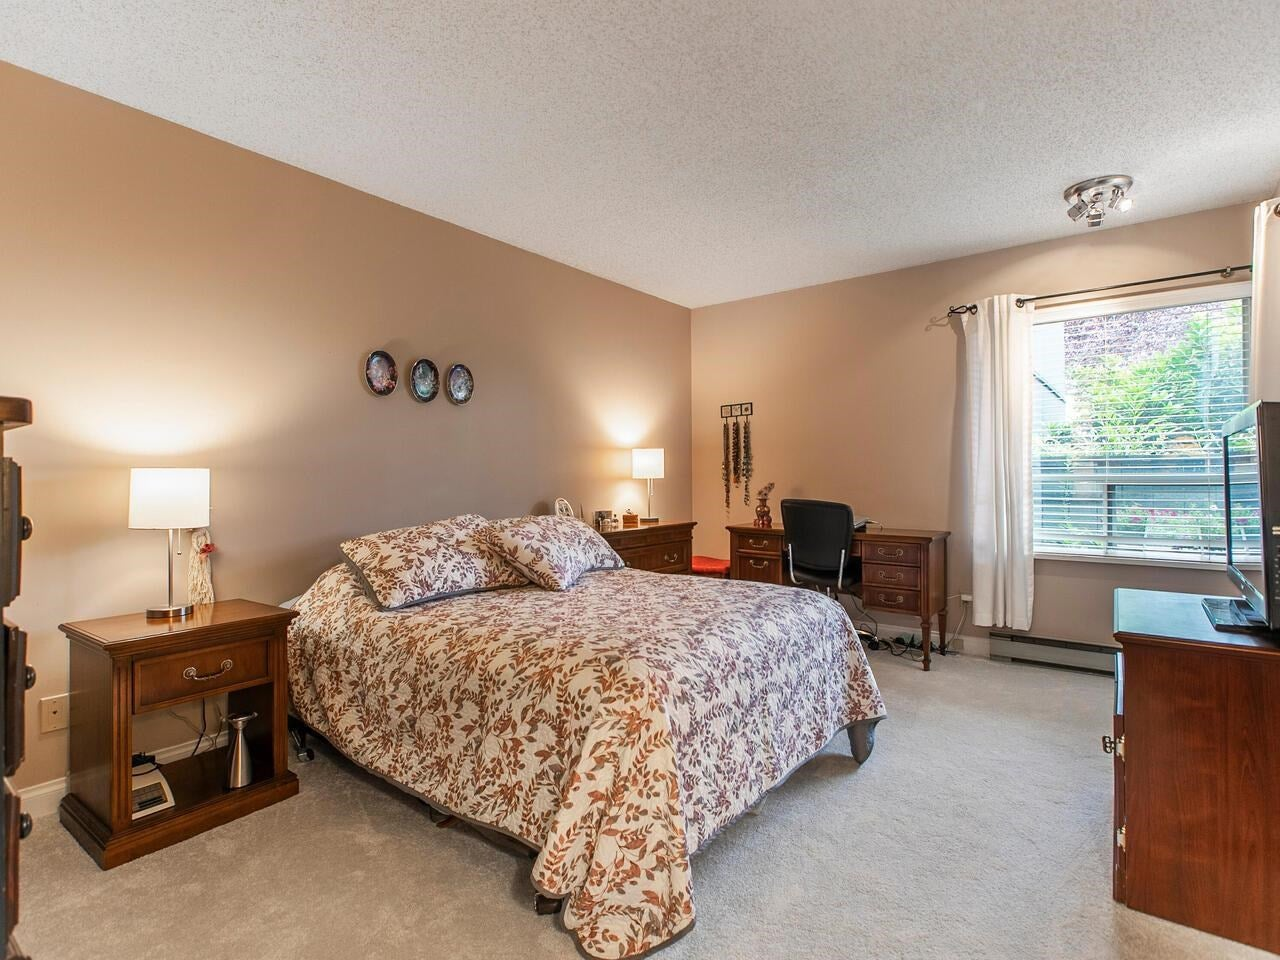 104 2800 CHESTERFIELD AVENUE - Upper Lonsdale Apartment/Condo for sale, 2 Bedrooms (R2603260) - #16